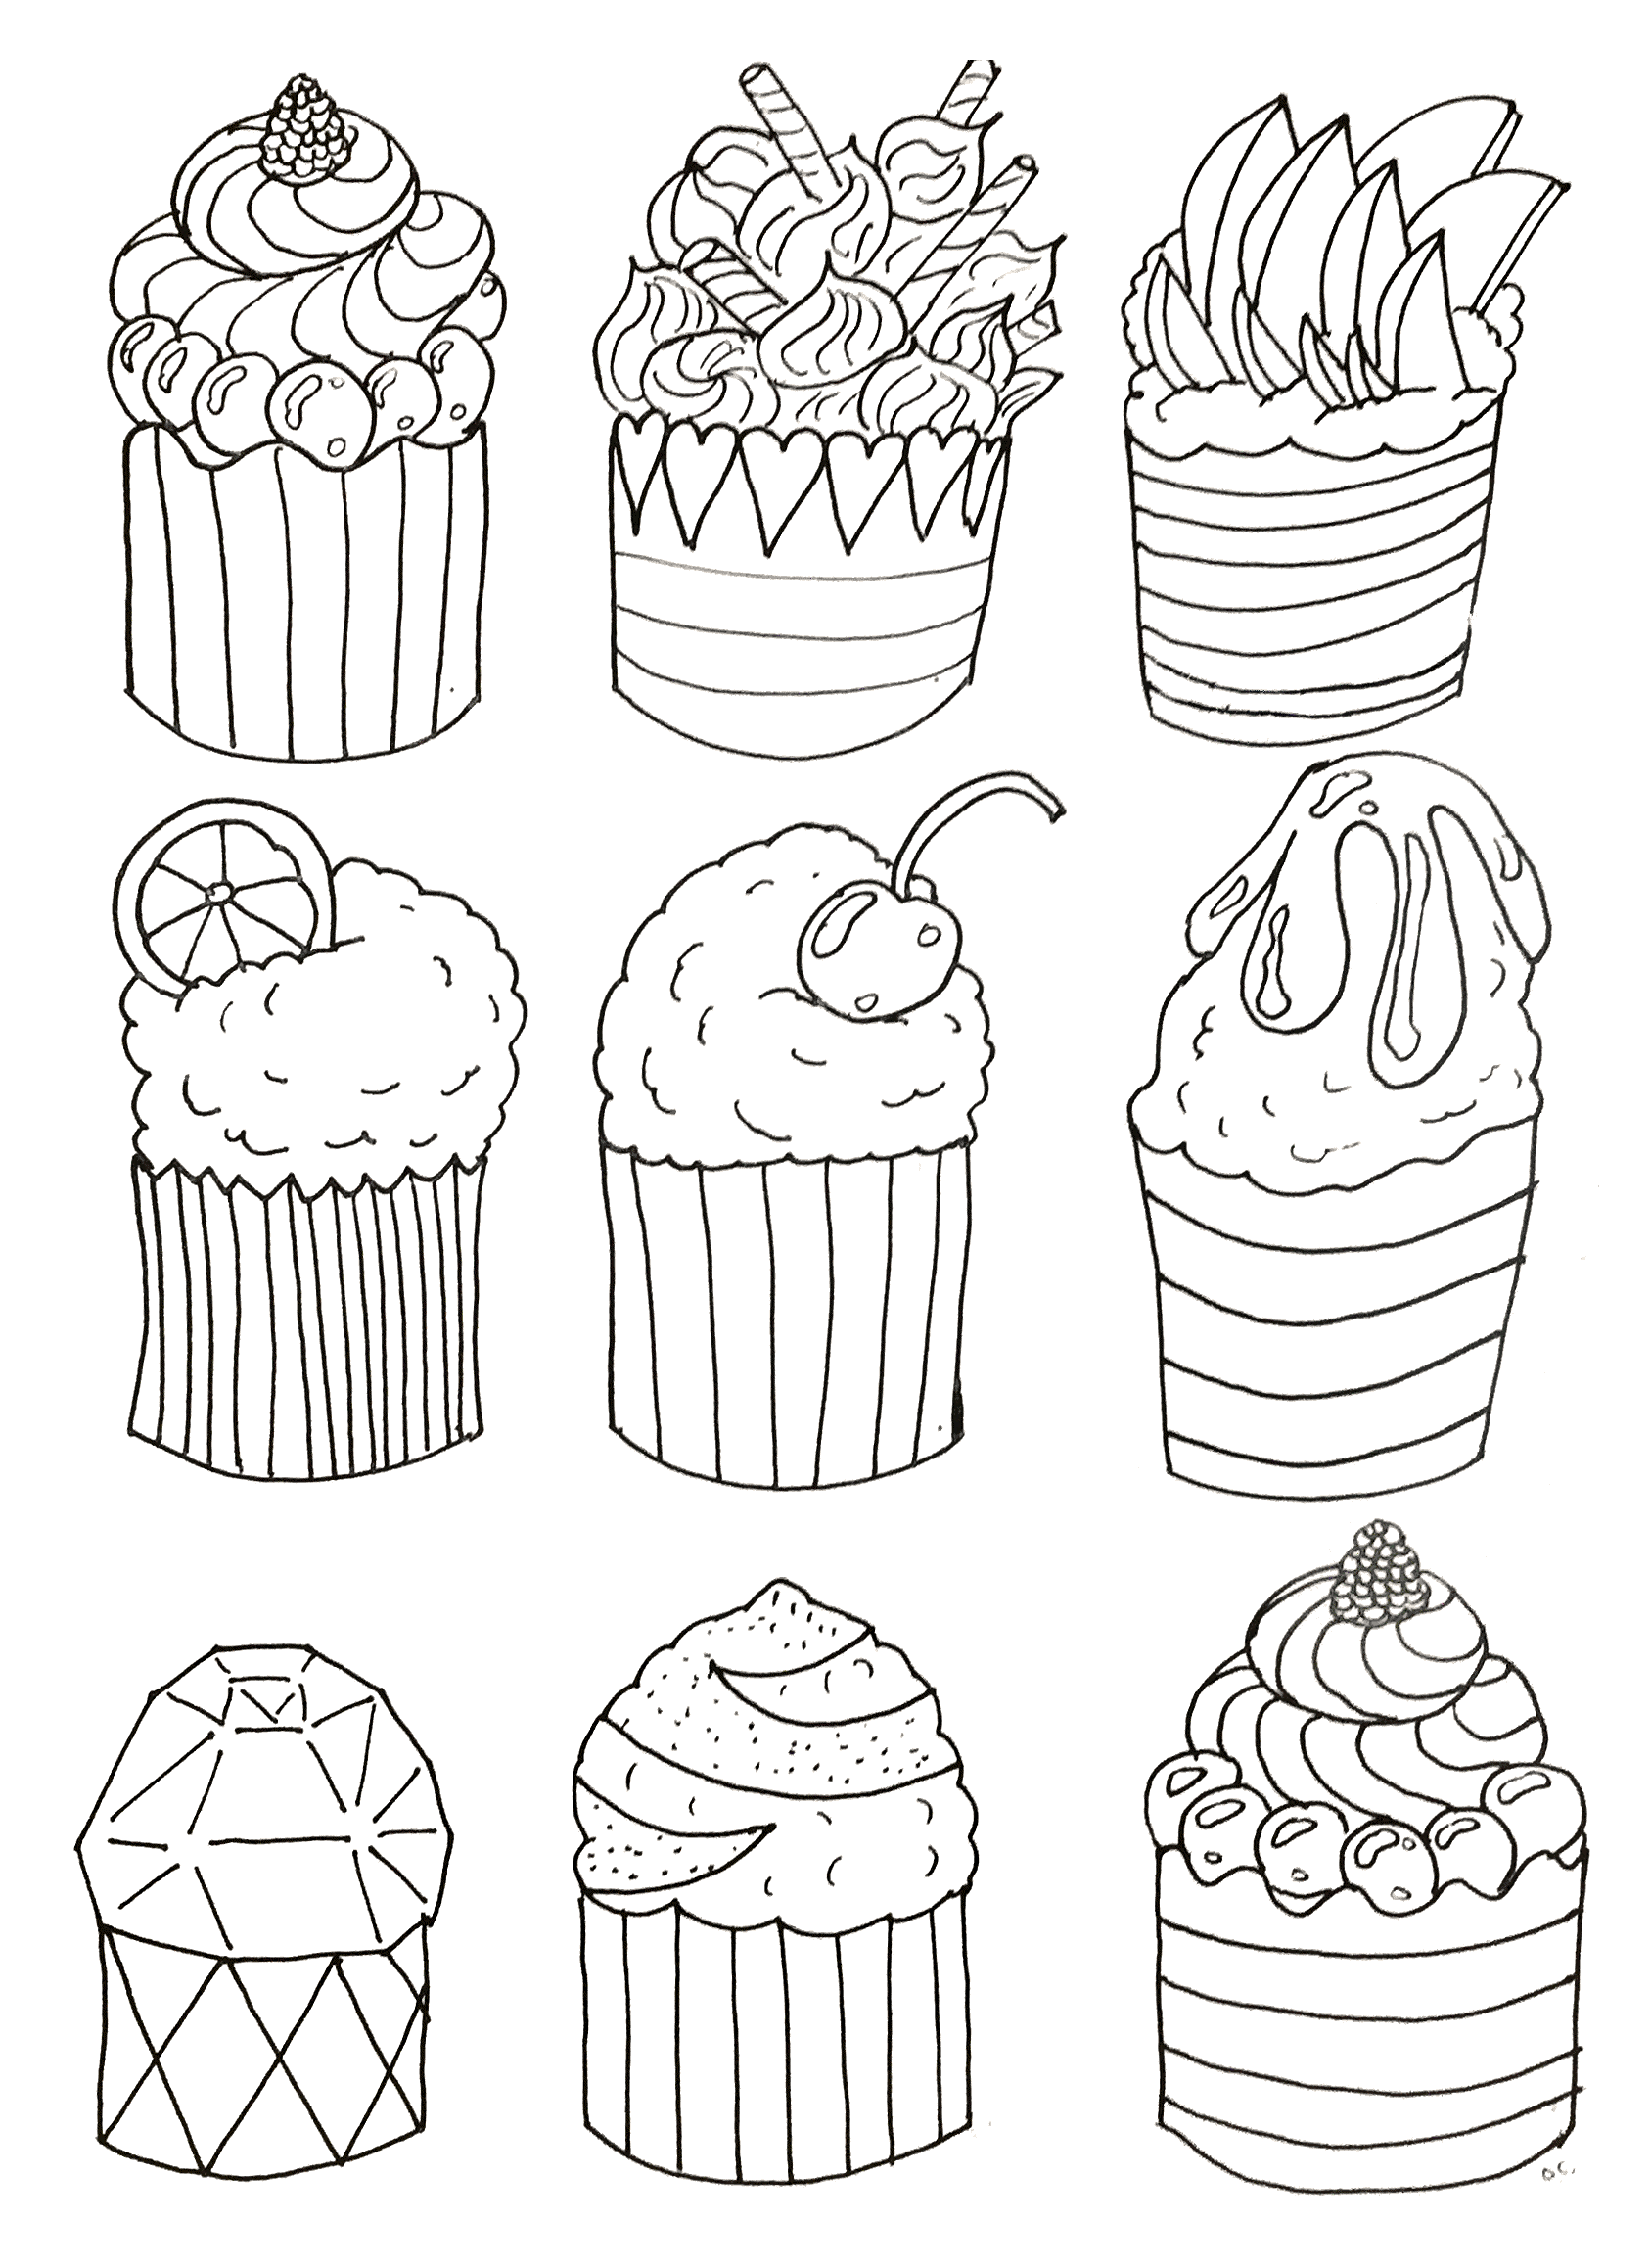 Simple cupcakes Cupcakes Adult Coloring Pages